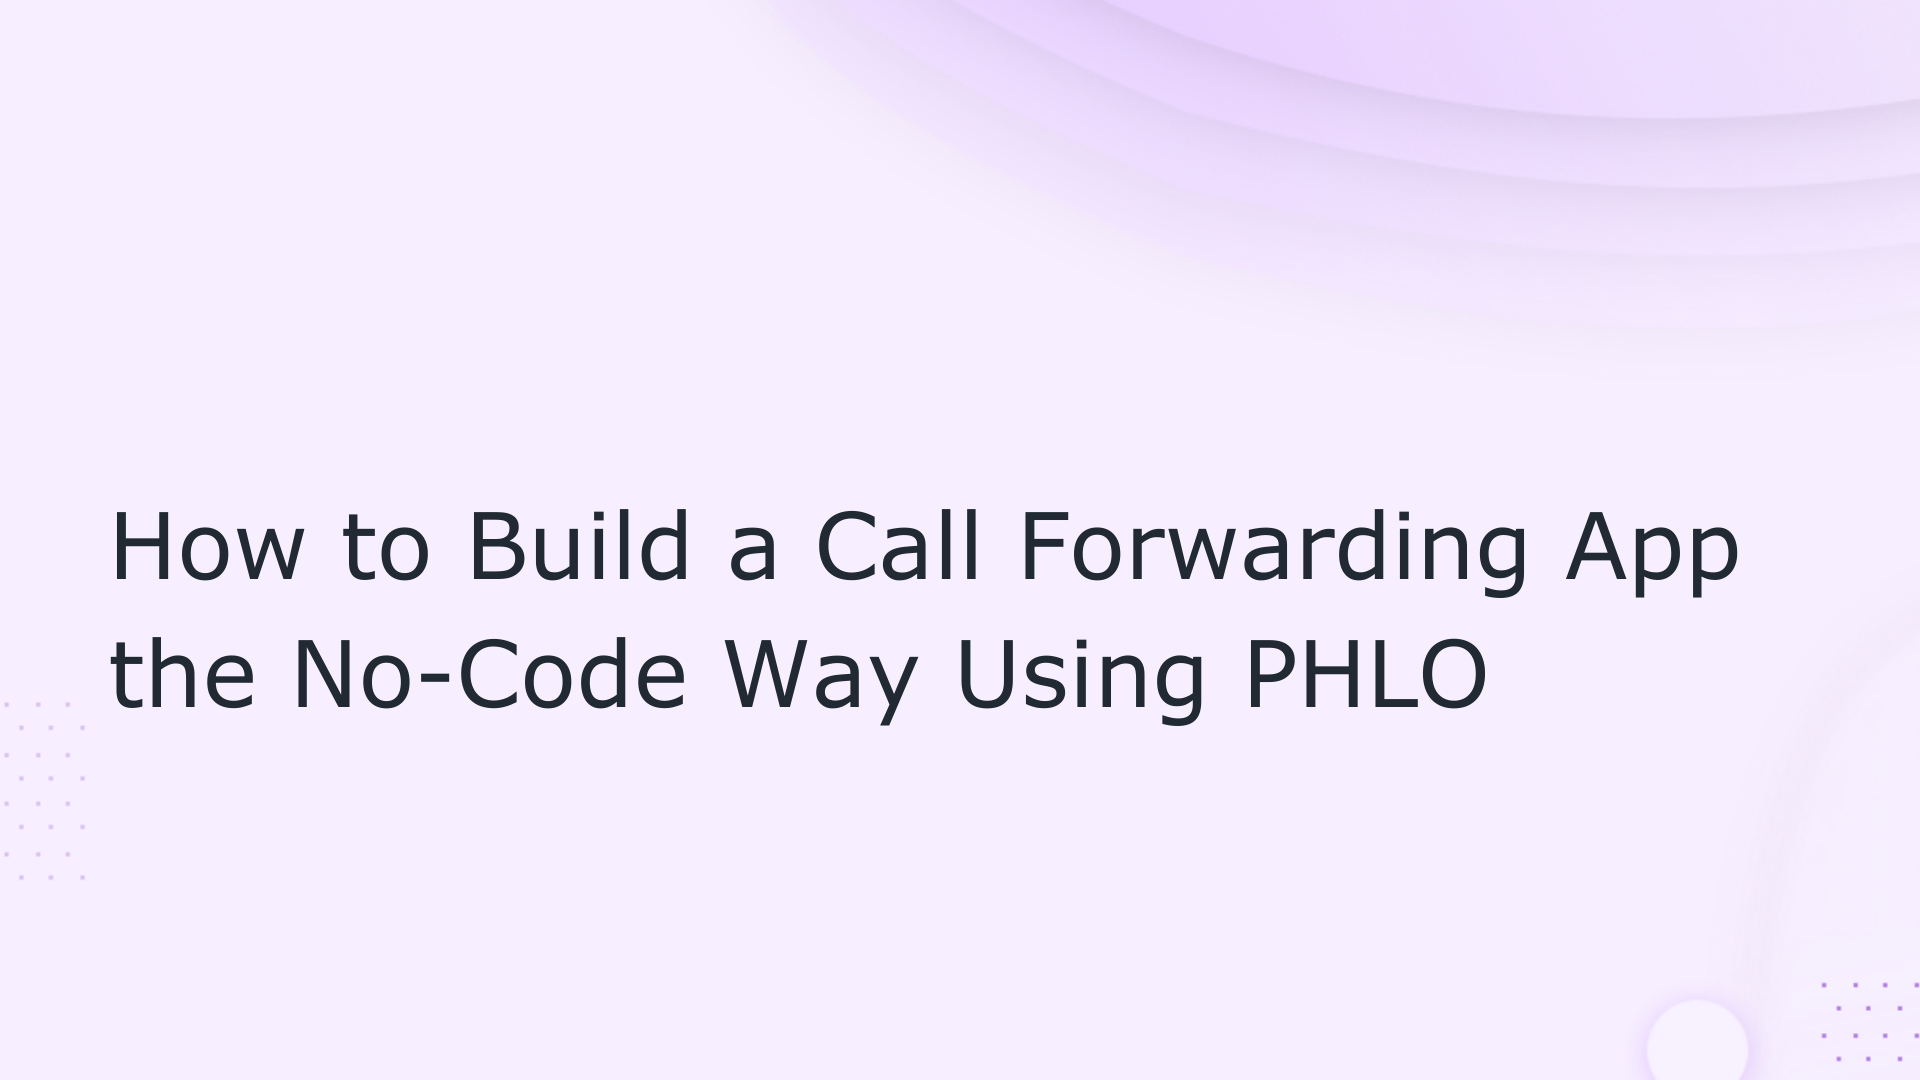 How to Build a Call Forwarding App the No-Code Way Using PHLO